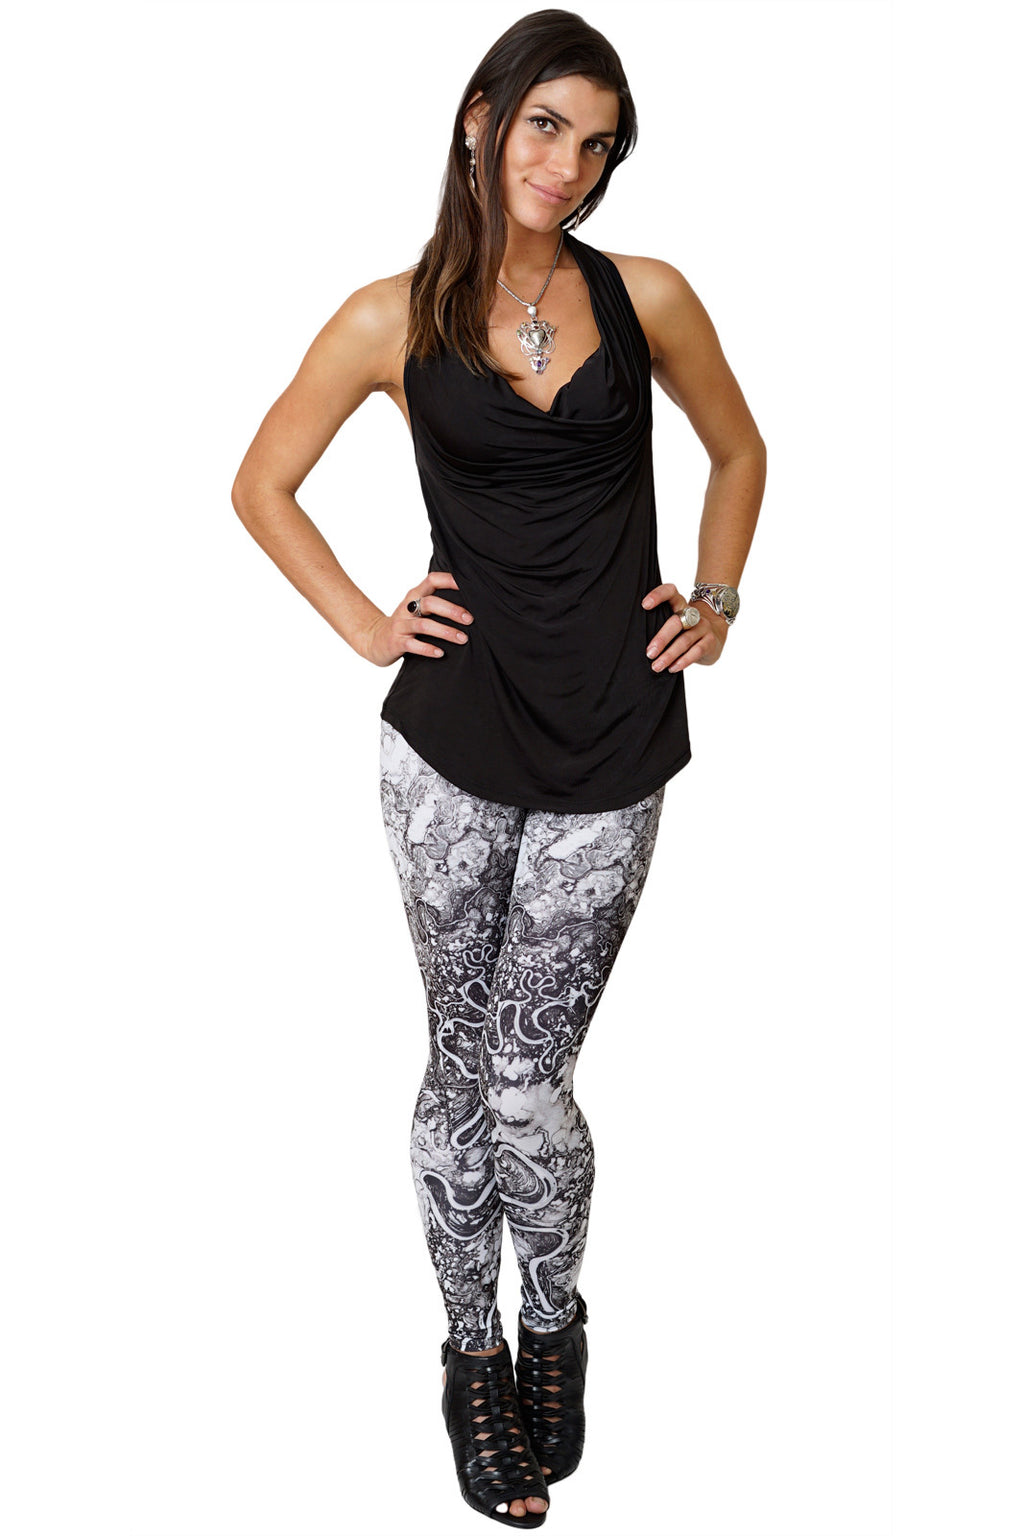 Leggings Earth Art-Festival Clothing-Mayn River